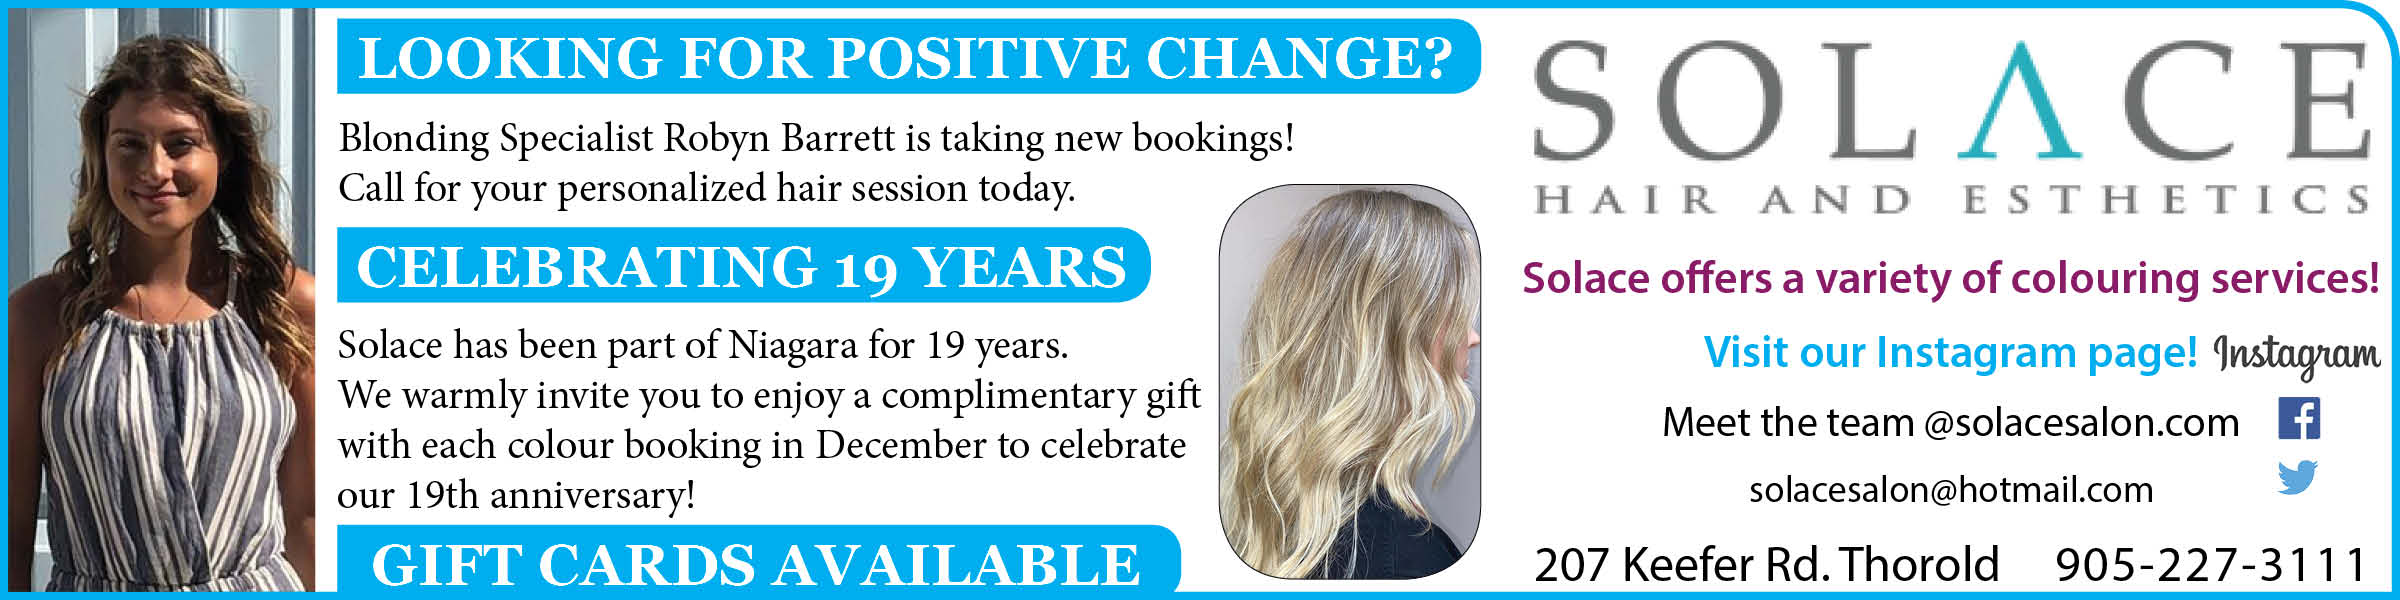 Solace Hair and Esthetics MY Thorold